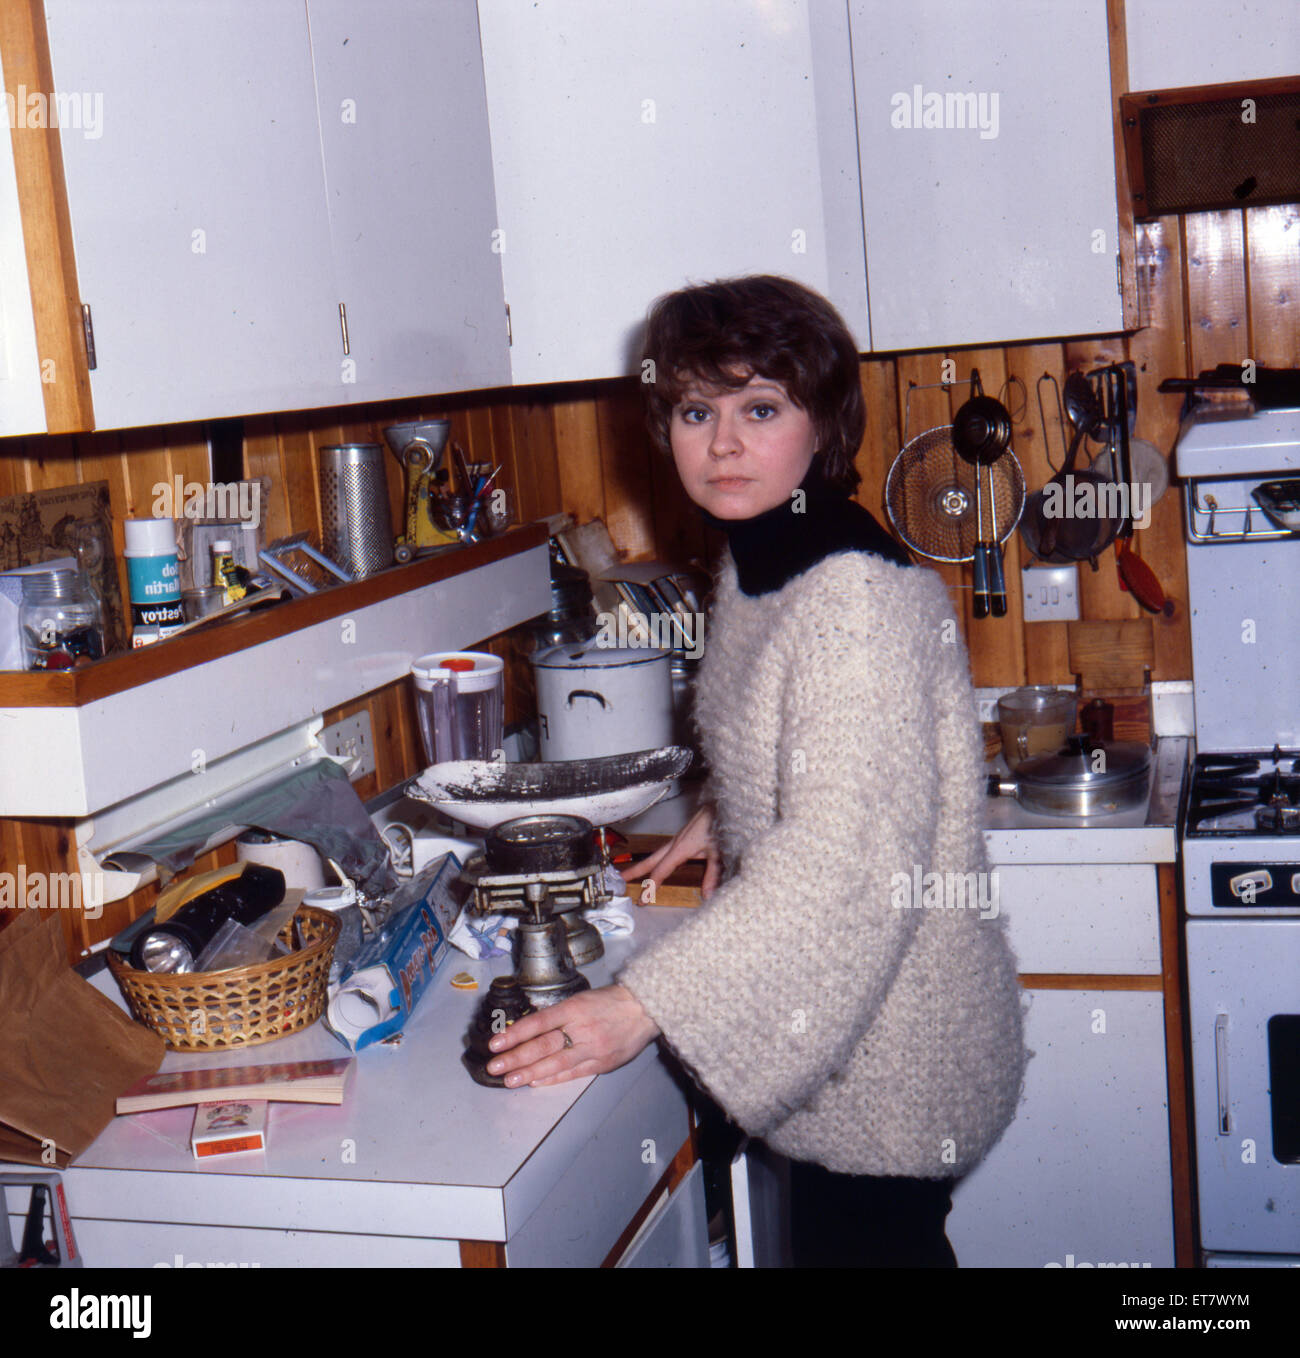 Prunella Scales, actrice, janvier 1980. Photo Stock